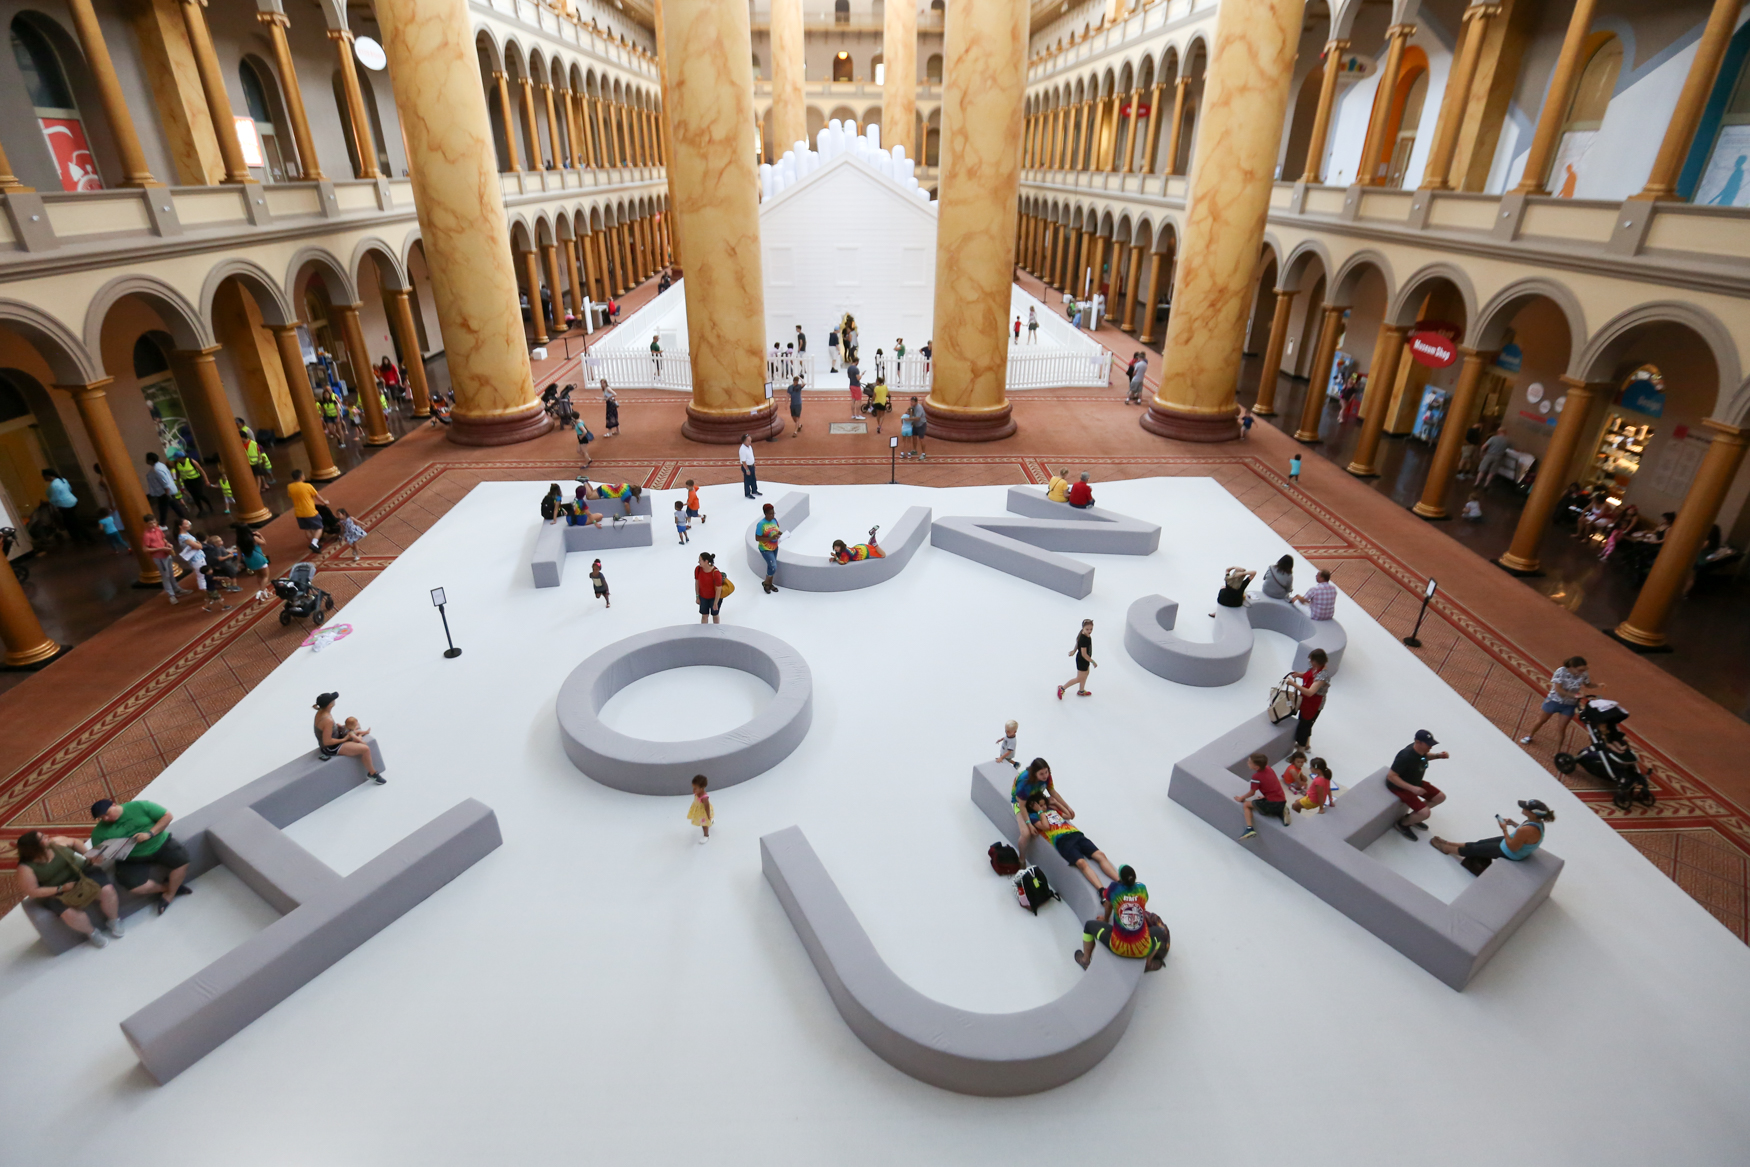 If you can't make it to a real pool, a super-Instagrammable pool filled with balls is a good alternative. Fun House, the National Building Museum's summer exhibit, features a giant house with an ice cave-like room made of white styrofoam in addition to the all-white pool area. (Amanda Andrade-Rhoades/DC Refined)